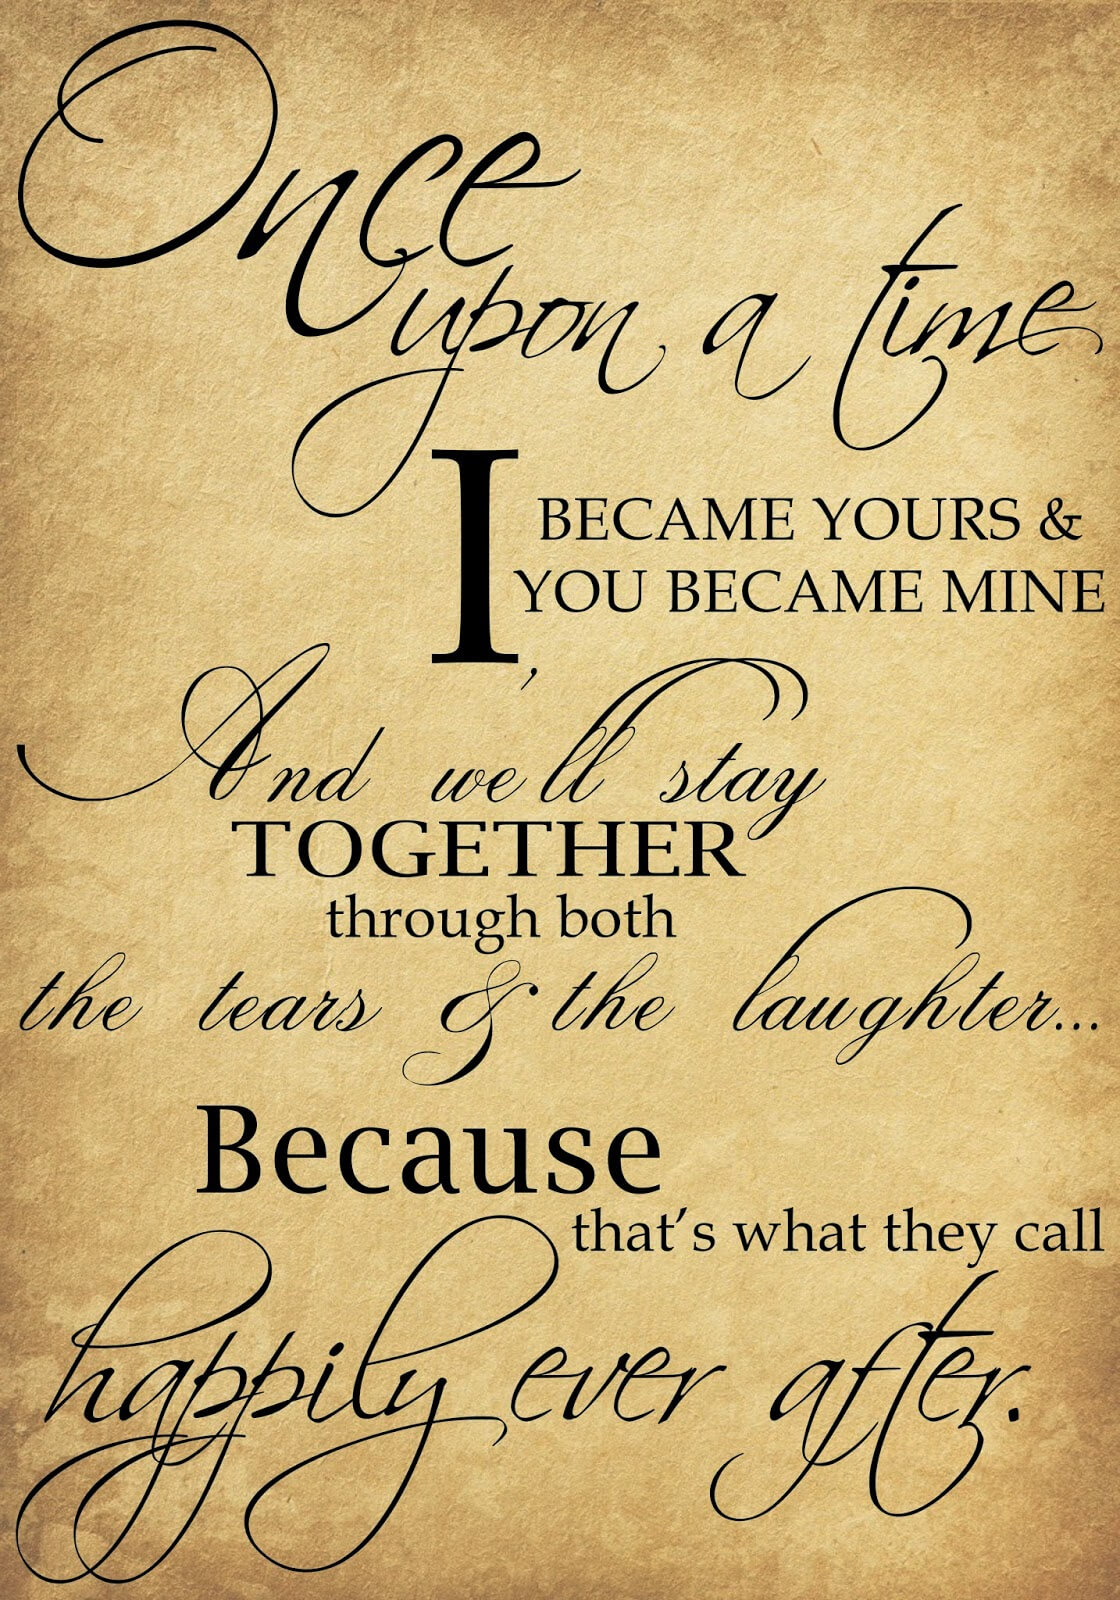 Once upon a time I became yours wall quotes decals | Wall Stickers